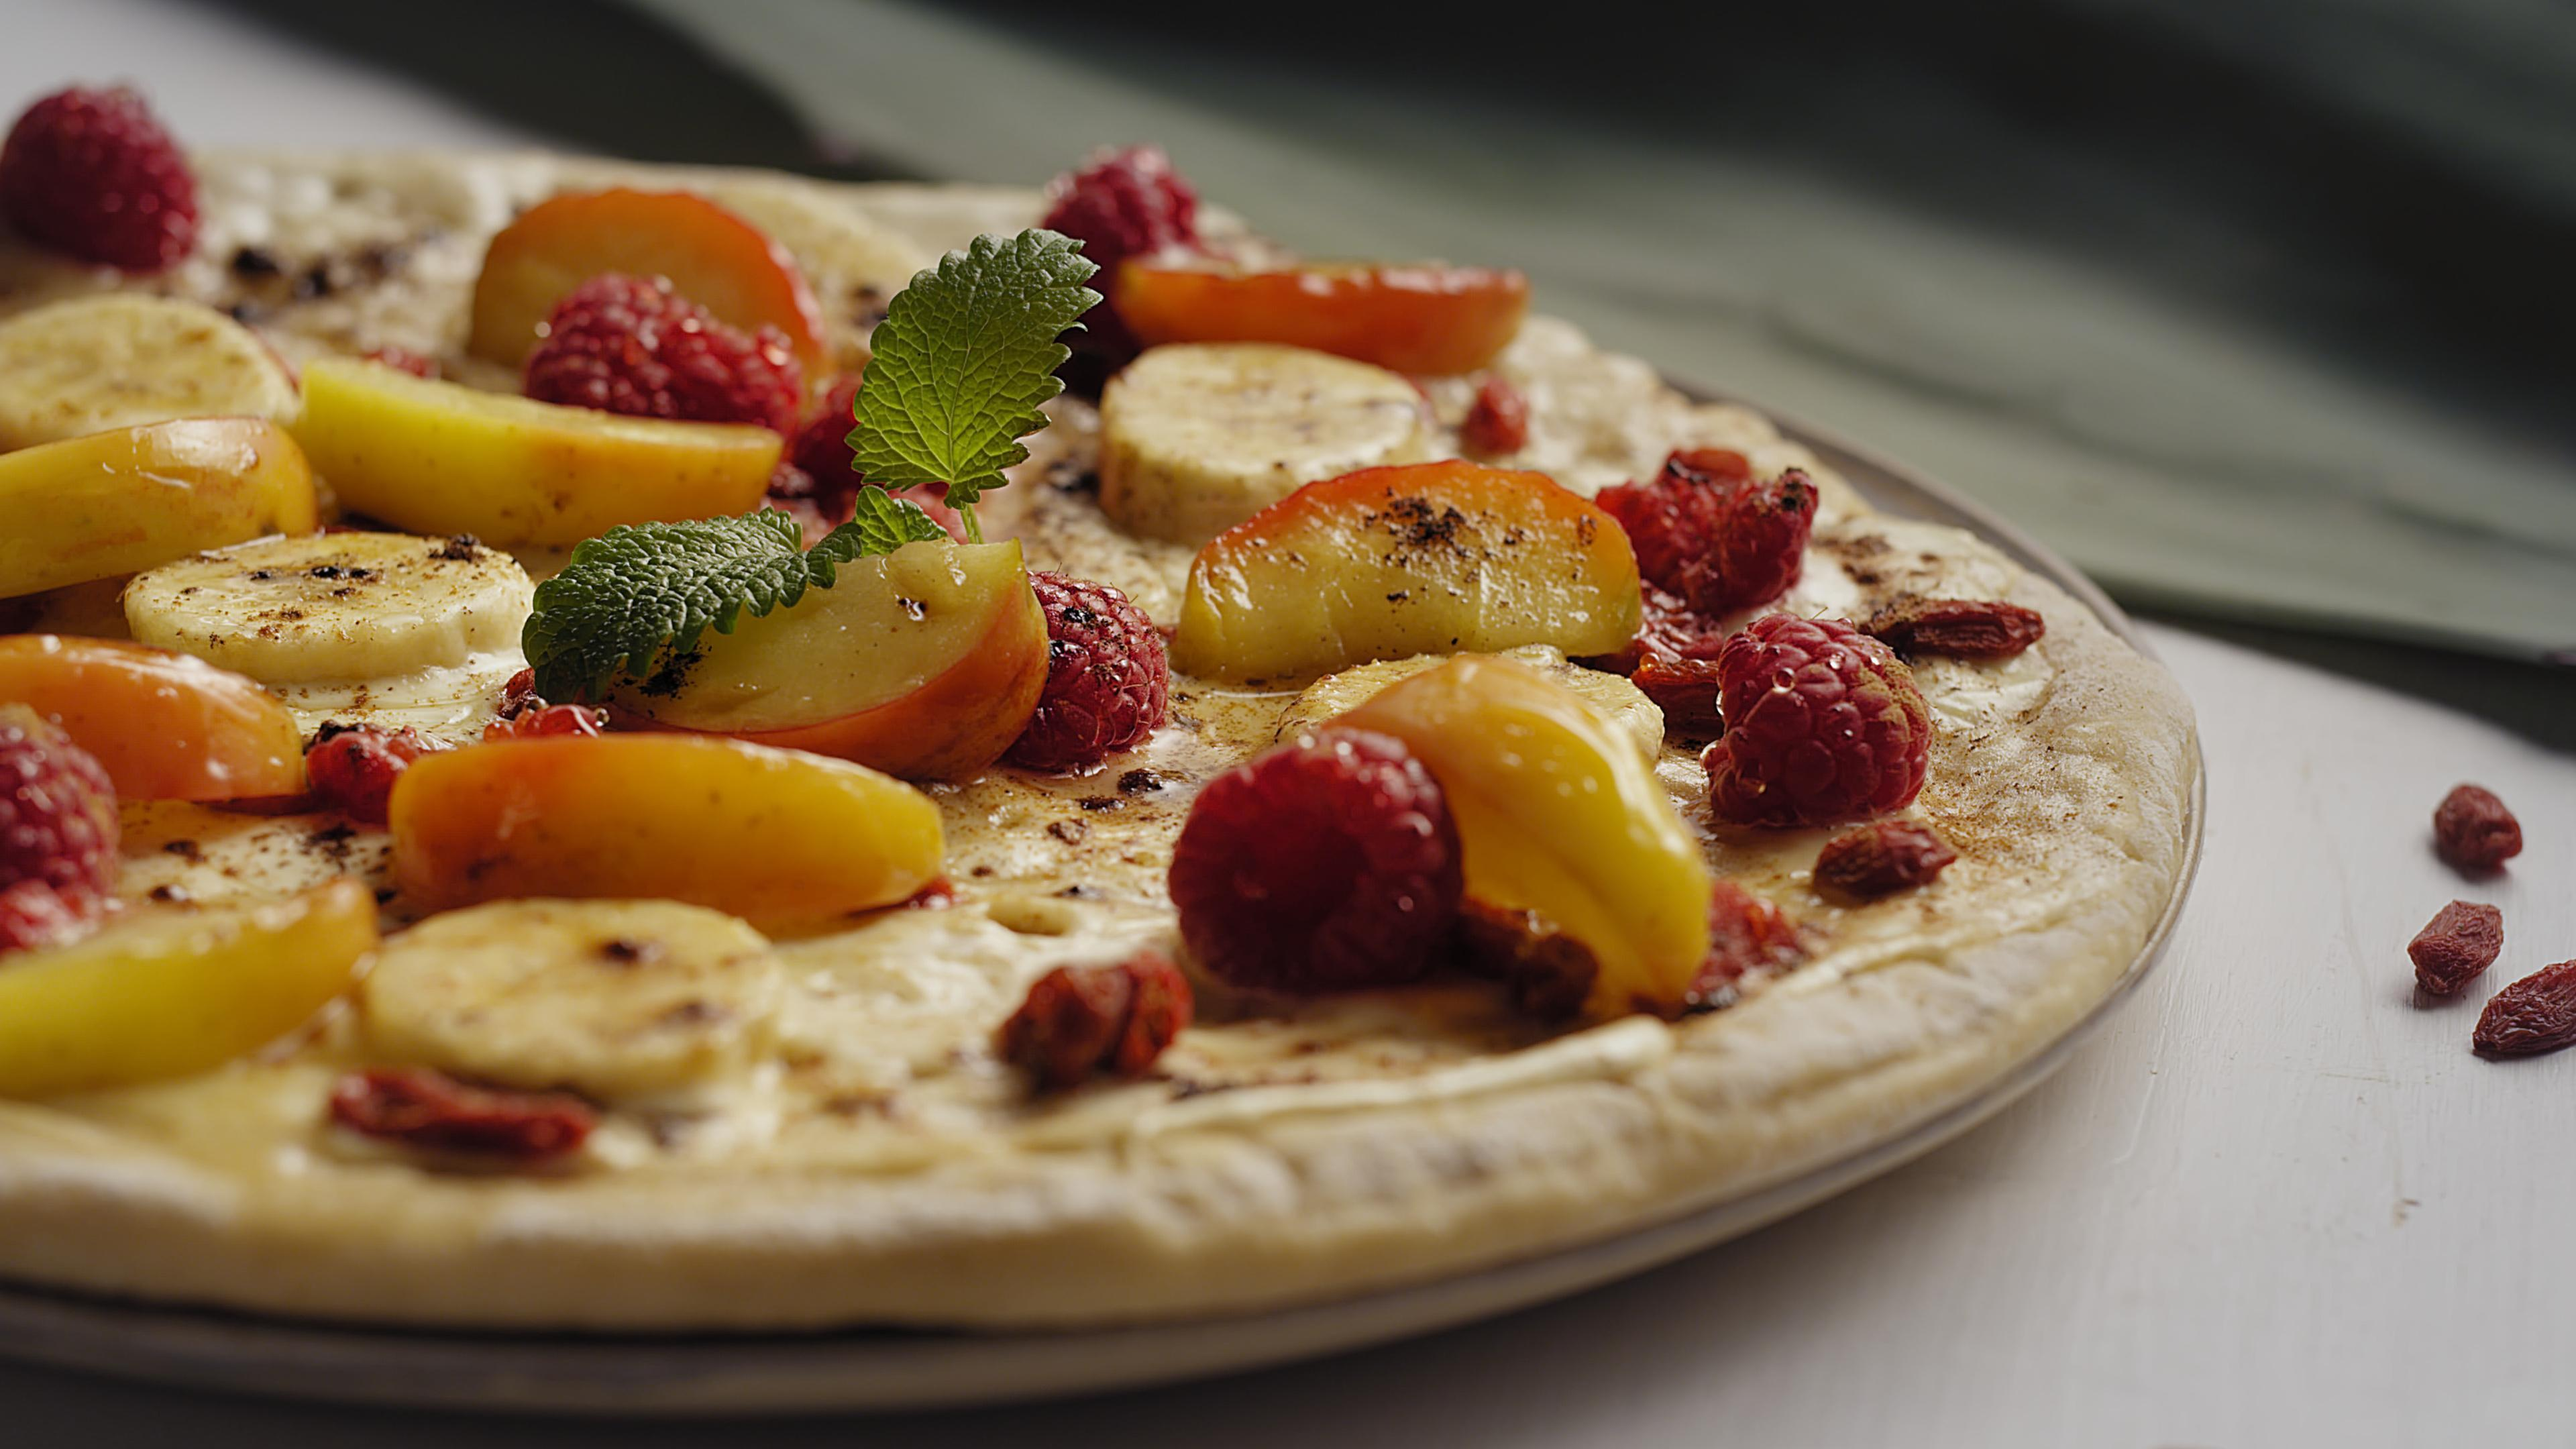 #3 Pizza aux fruits